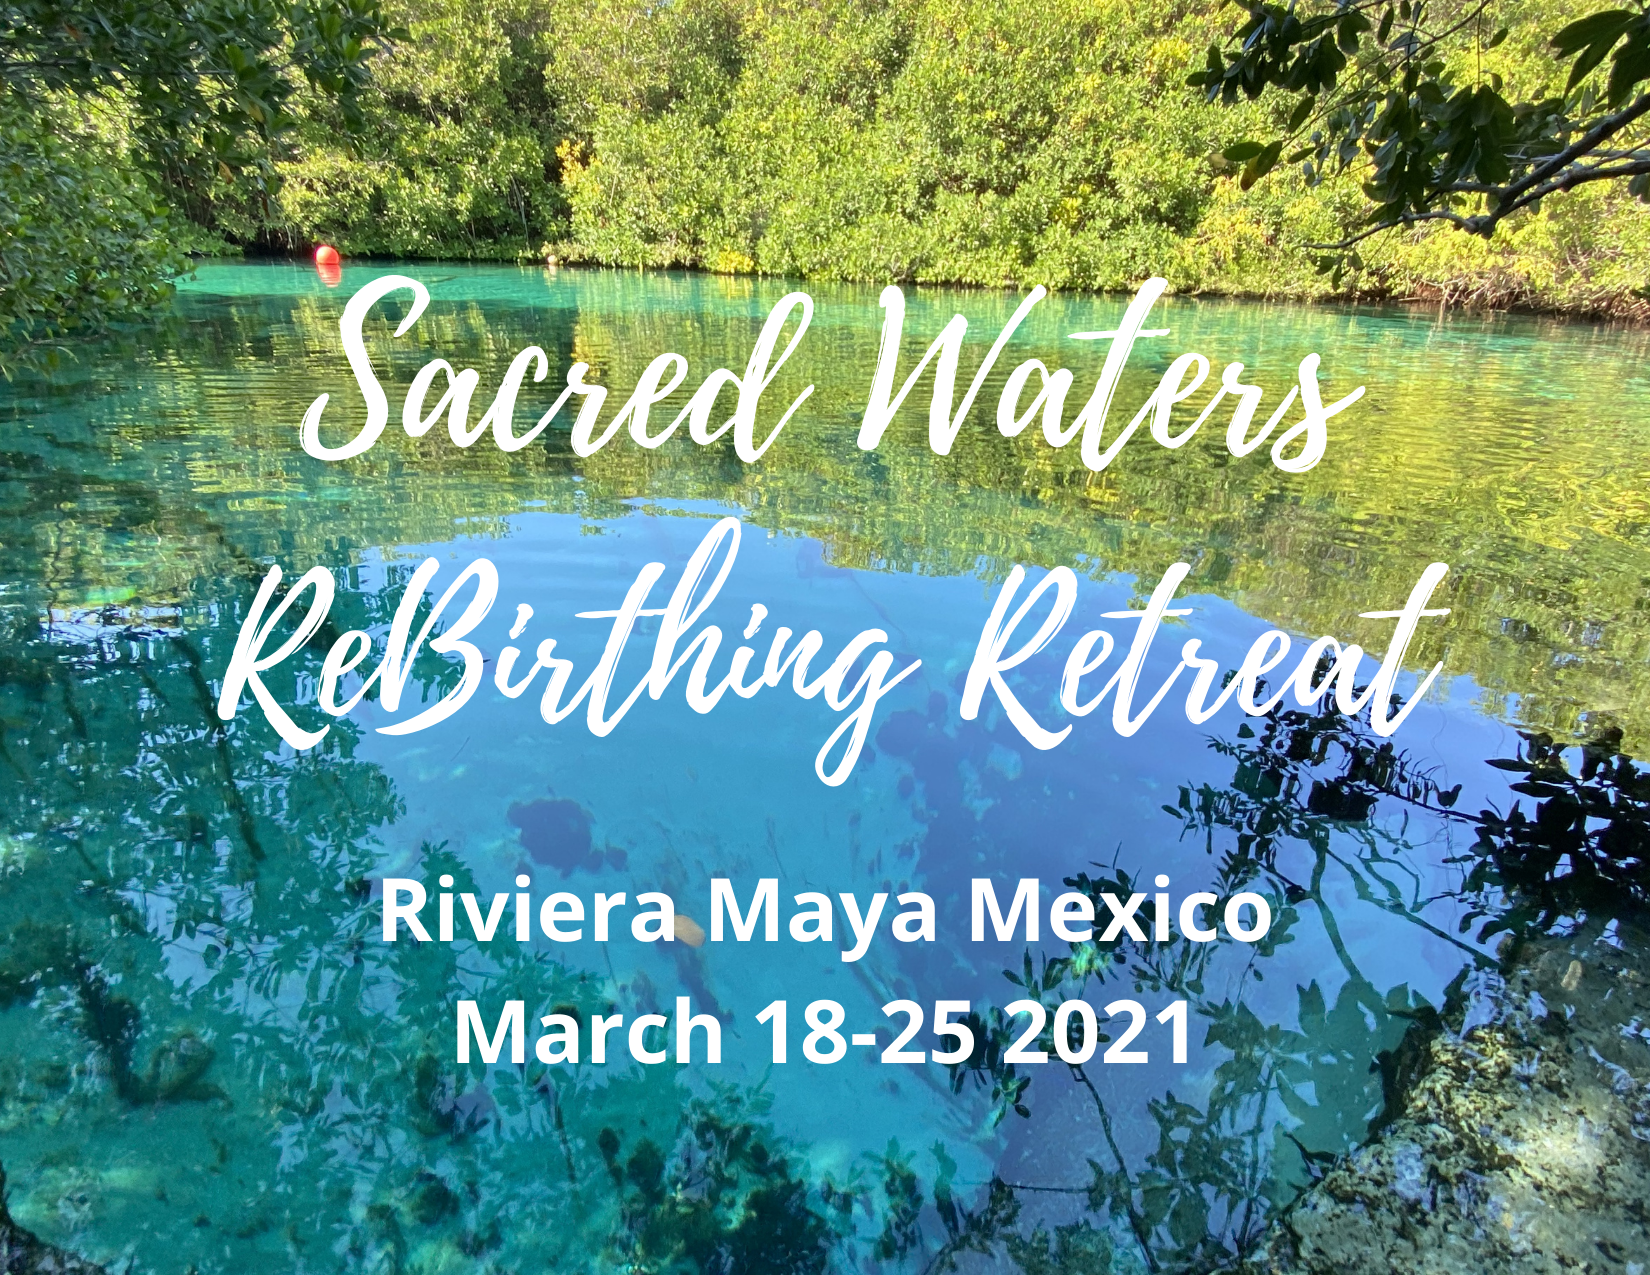 marketing Sacred Waters ReBirthing Retre